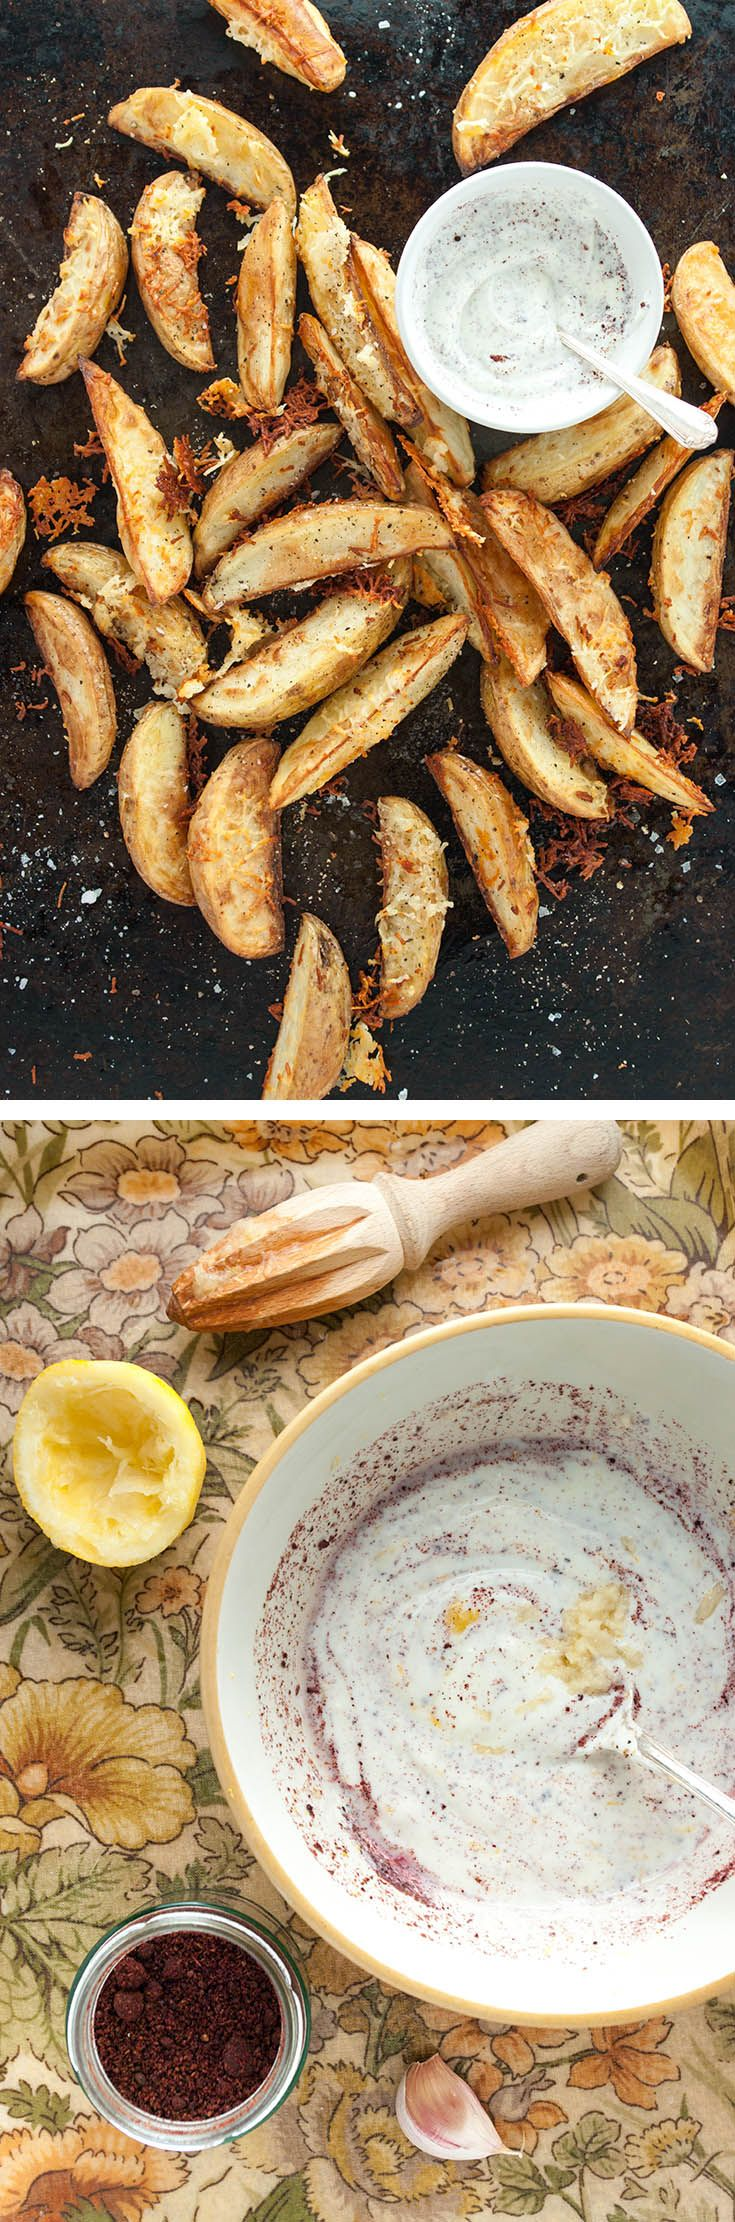 Caramelised halloumi potato wedges with sumac yoghurt – from How to Cook Halloumi cookbook by Nancy Anne Harbord. Baked potato wedges with crispy halloumi coating and sumac yoghurt dip. By @deliciouscratch | deliciousfromscratch.com